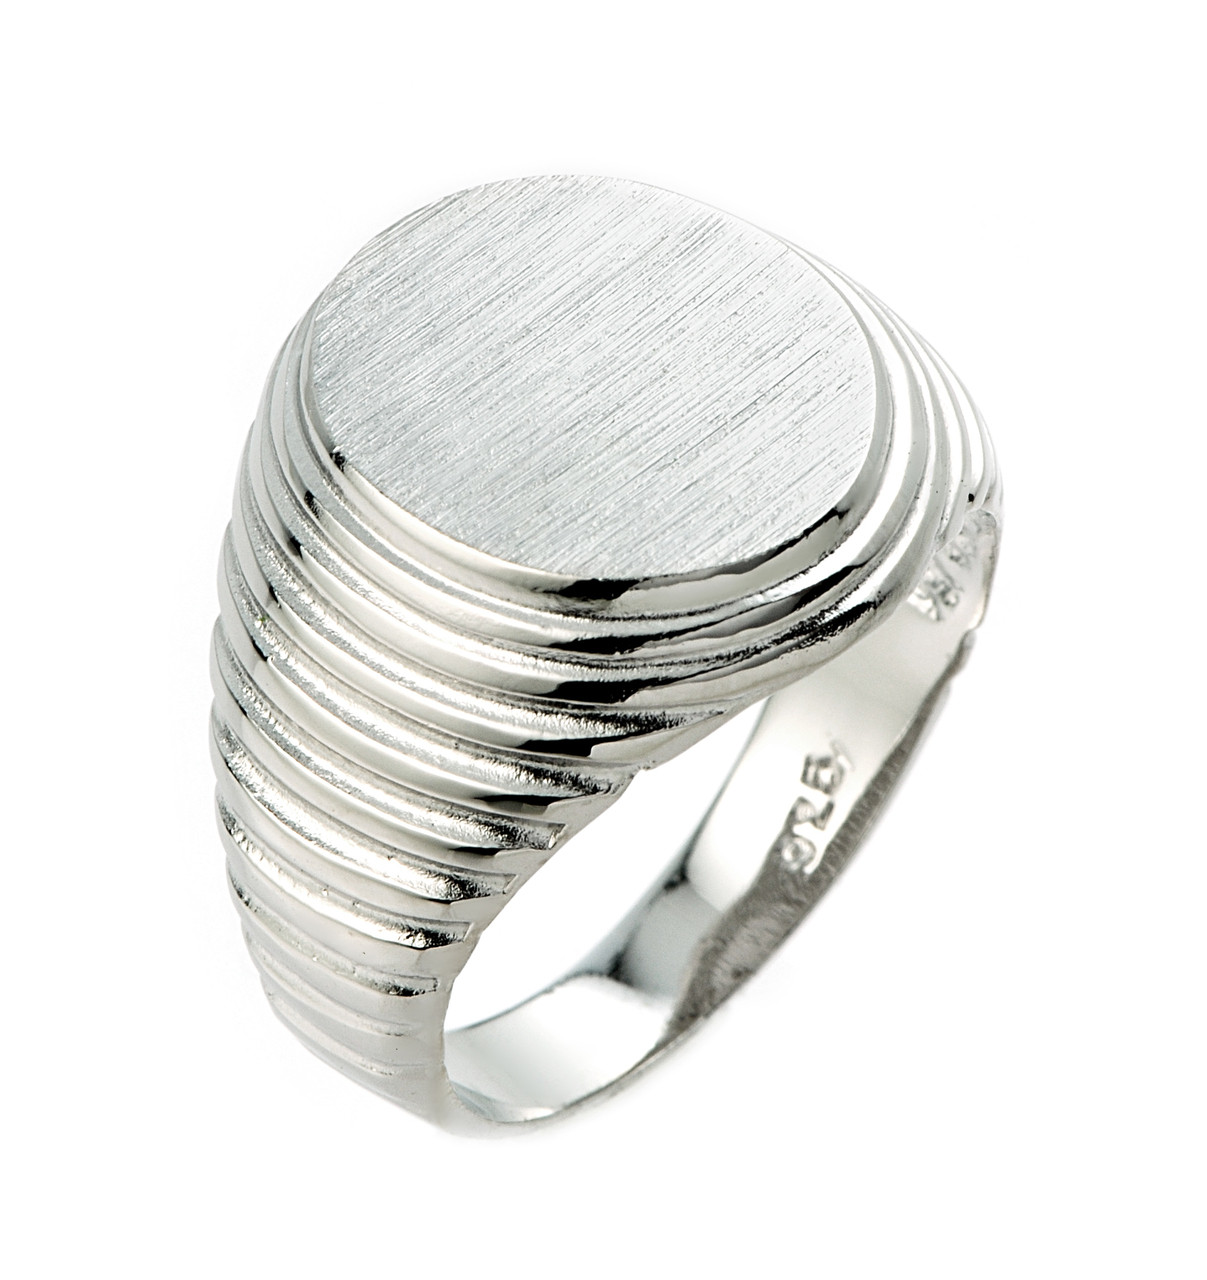 925 Sterling Silver Signet Ring For Men Made In USA